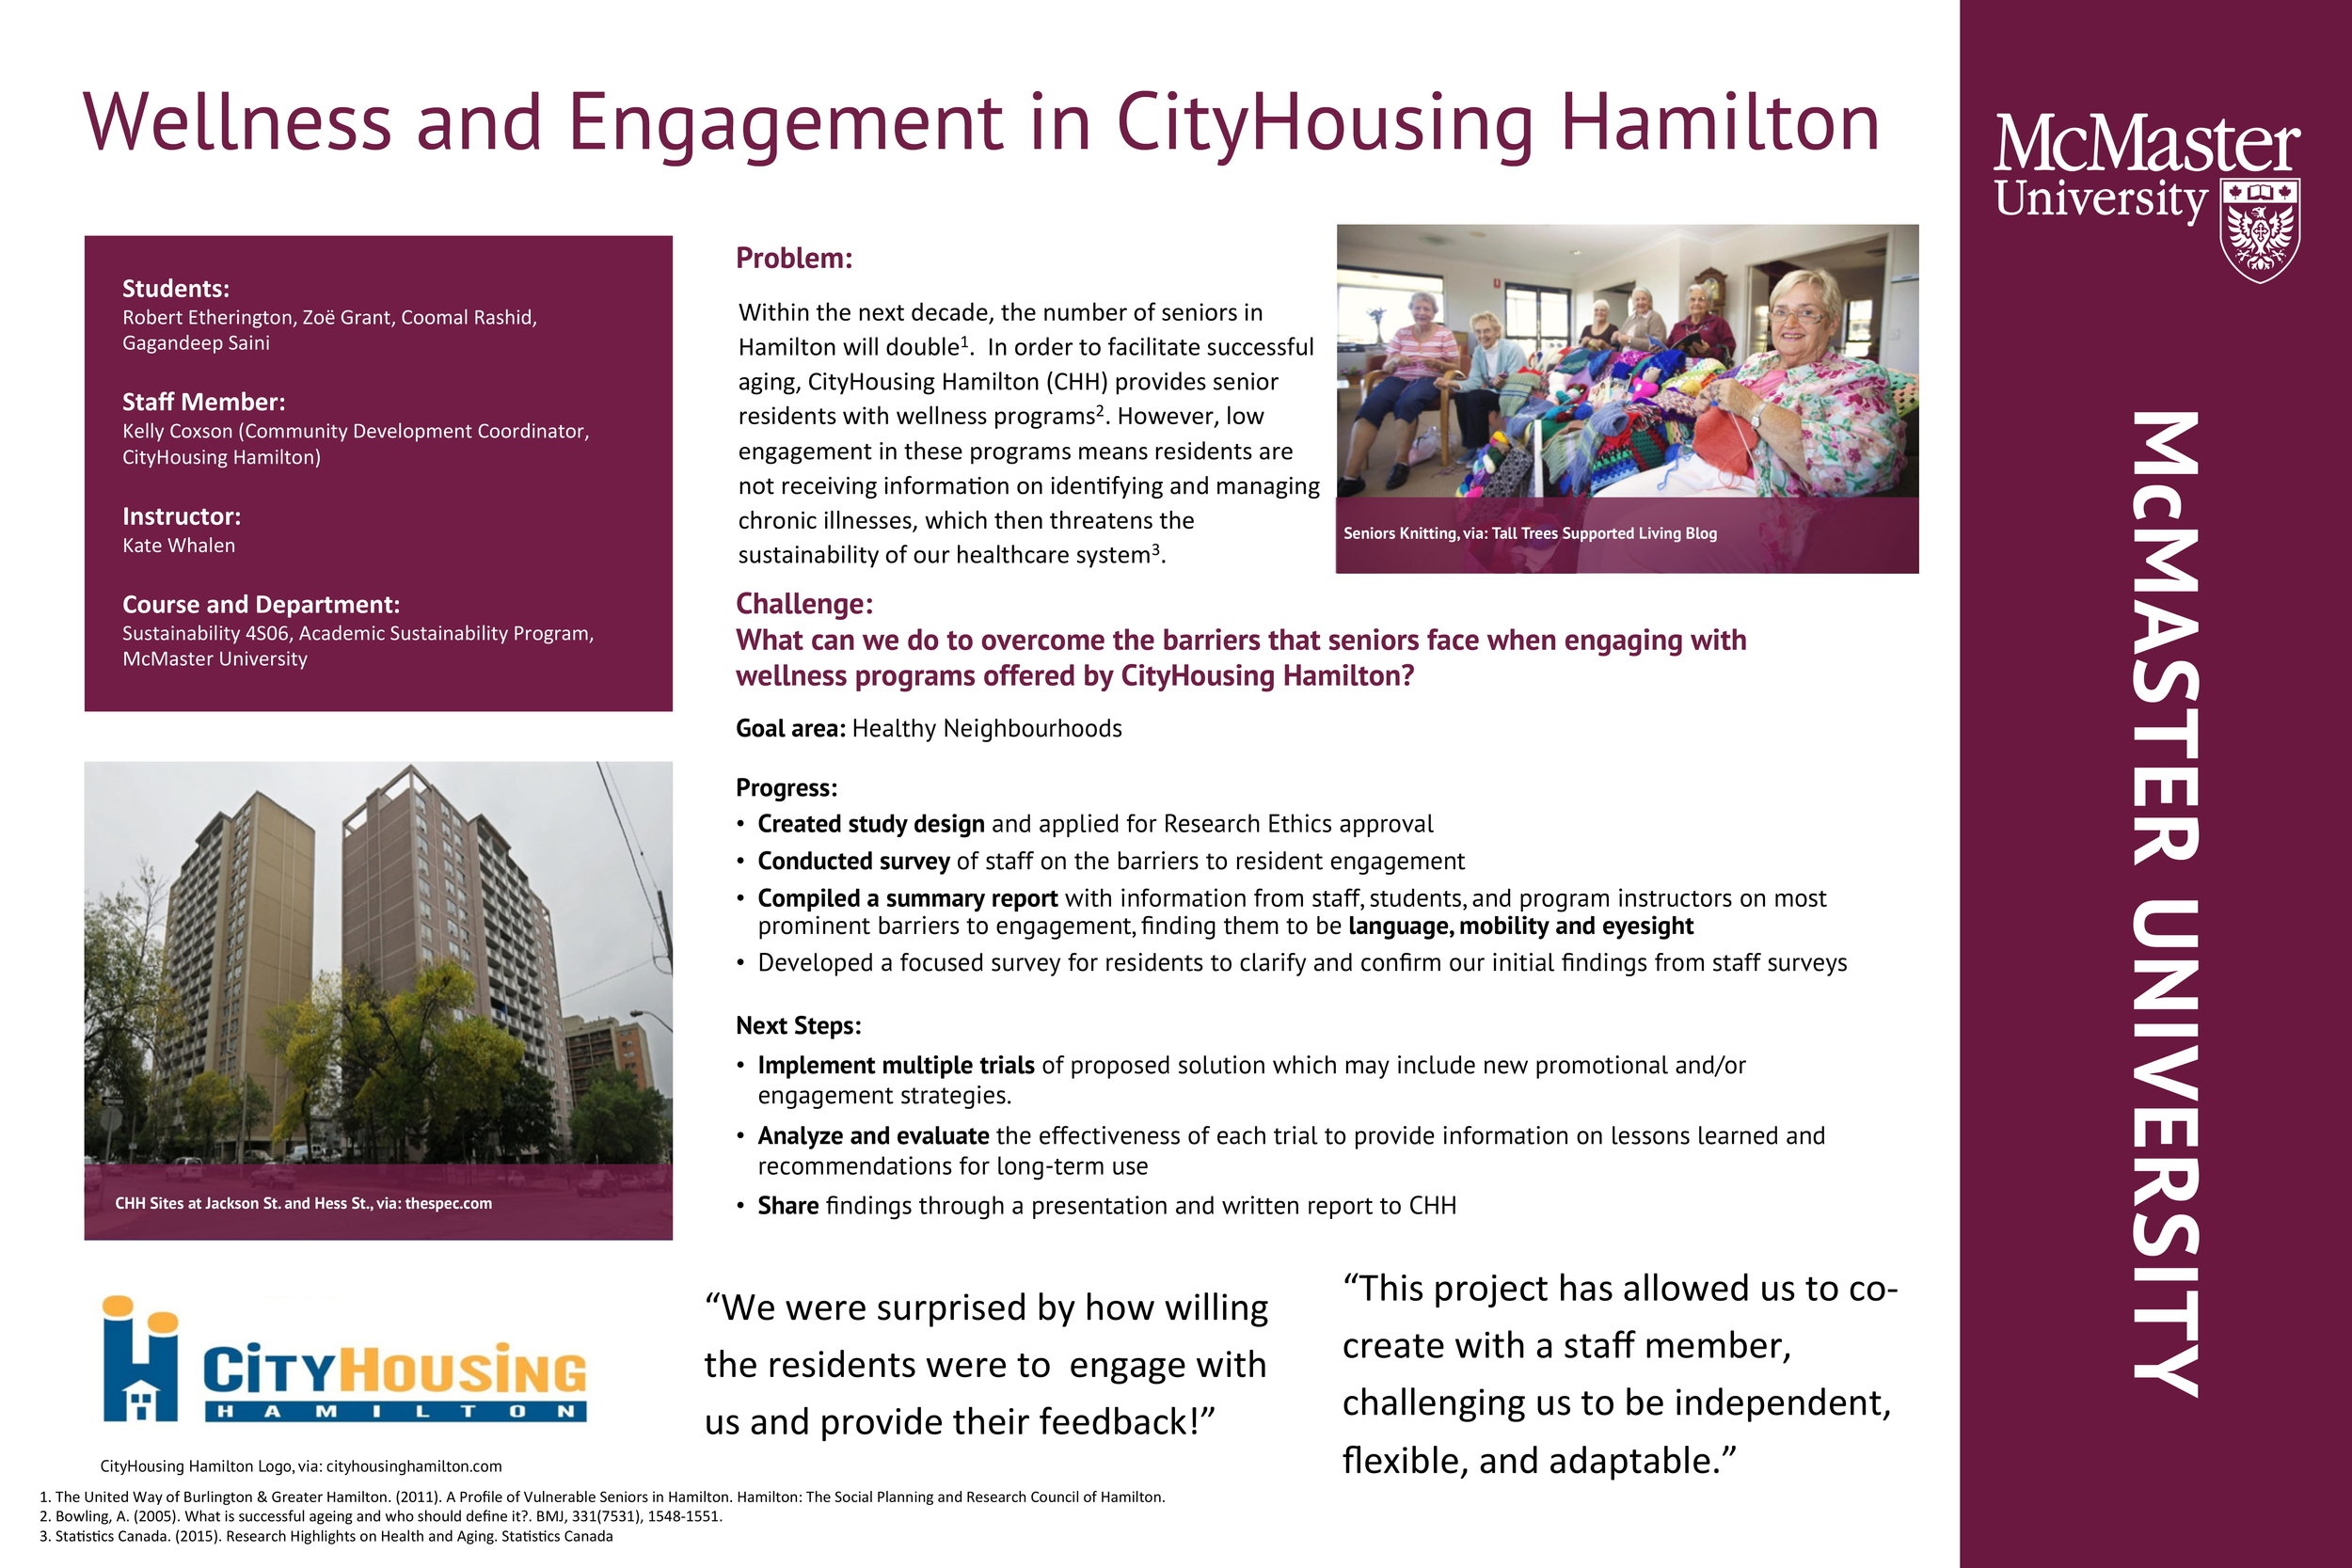 Wellness and Engagement in CityHousing-1.jpg